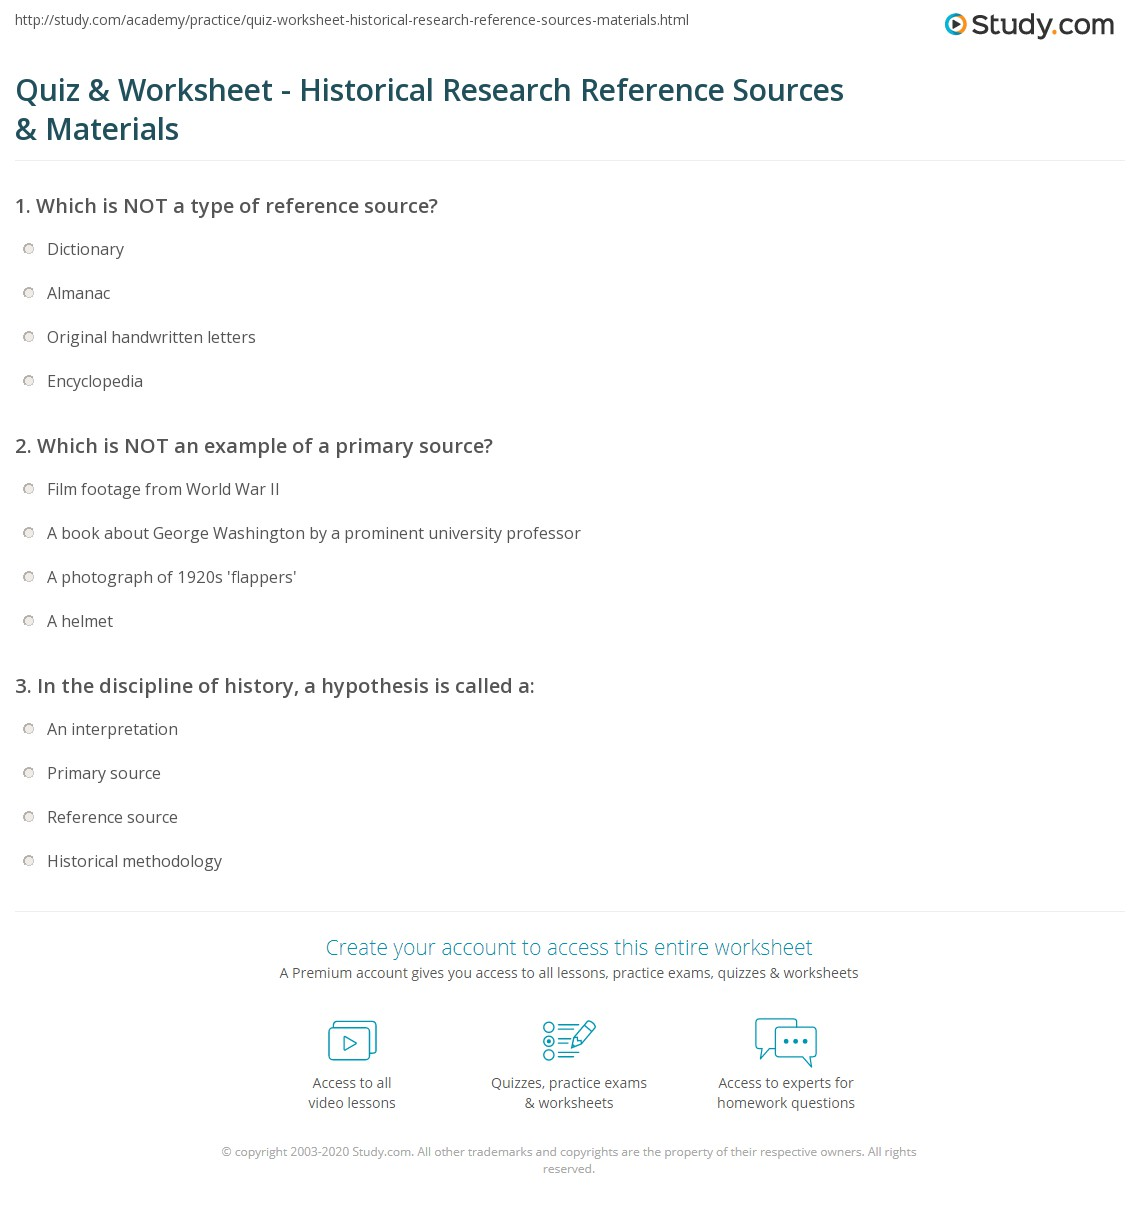 quiz worksheet historical research reference sources materials. Black Bedroom Furniture Sets. Home Design Ideas